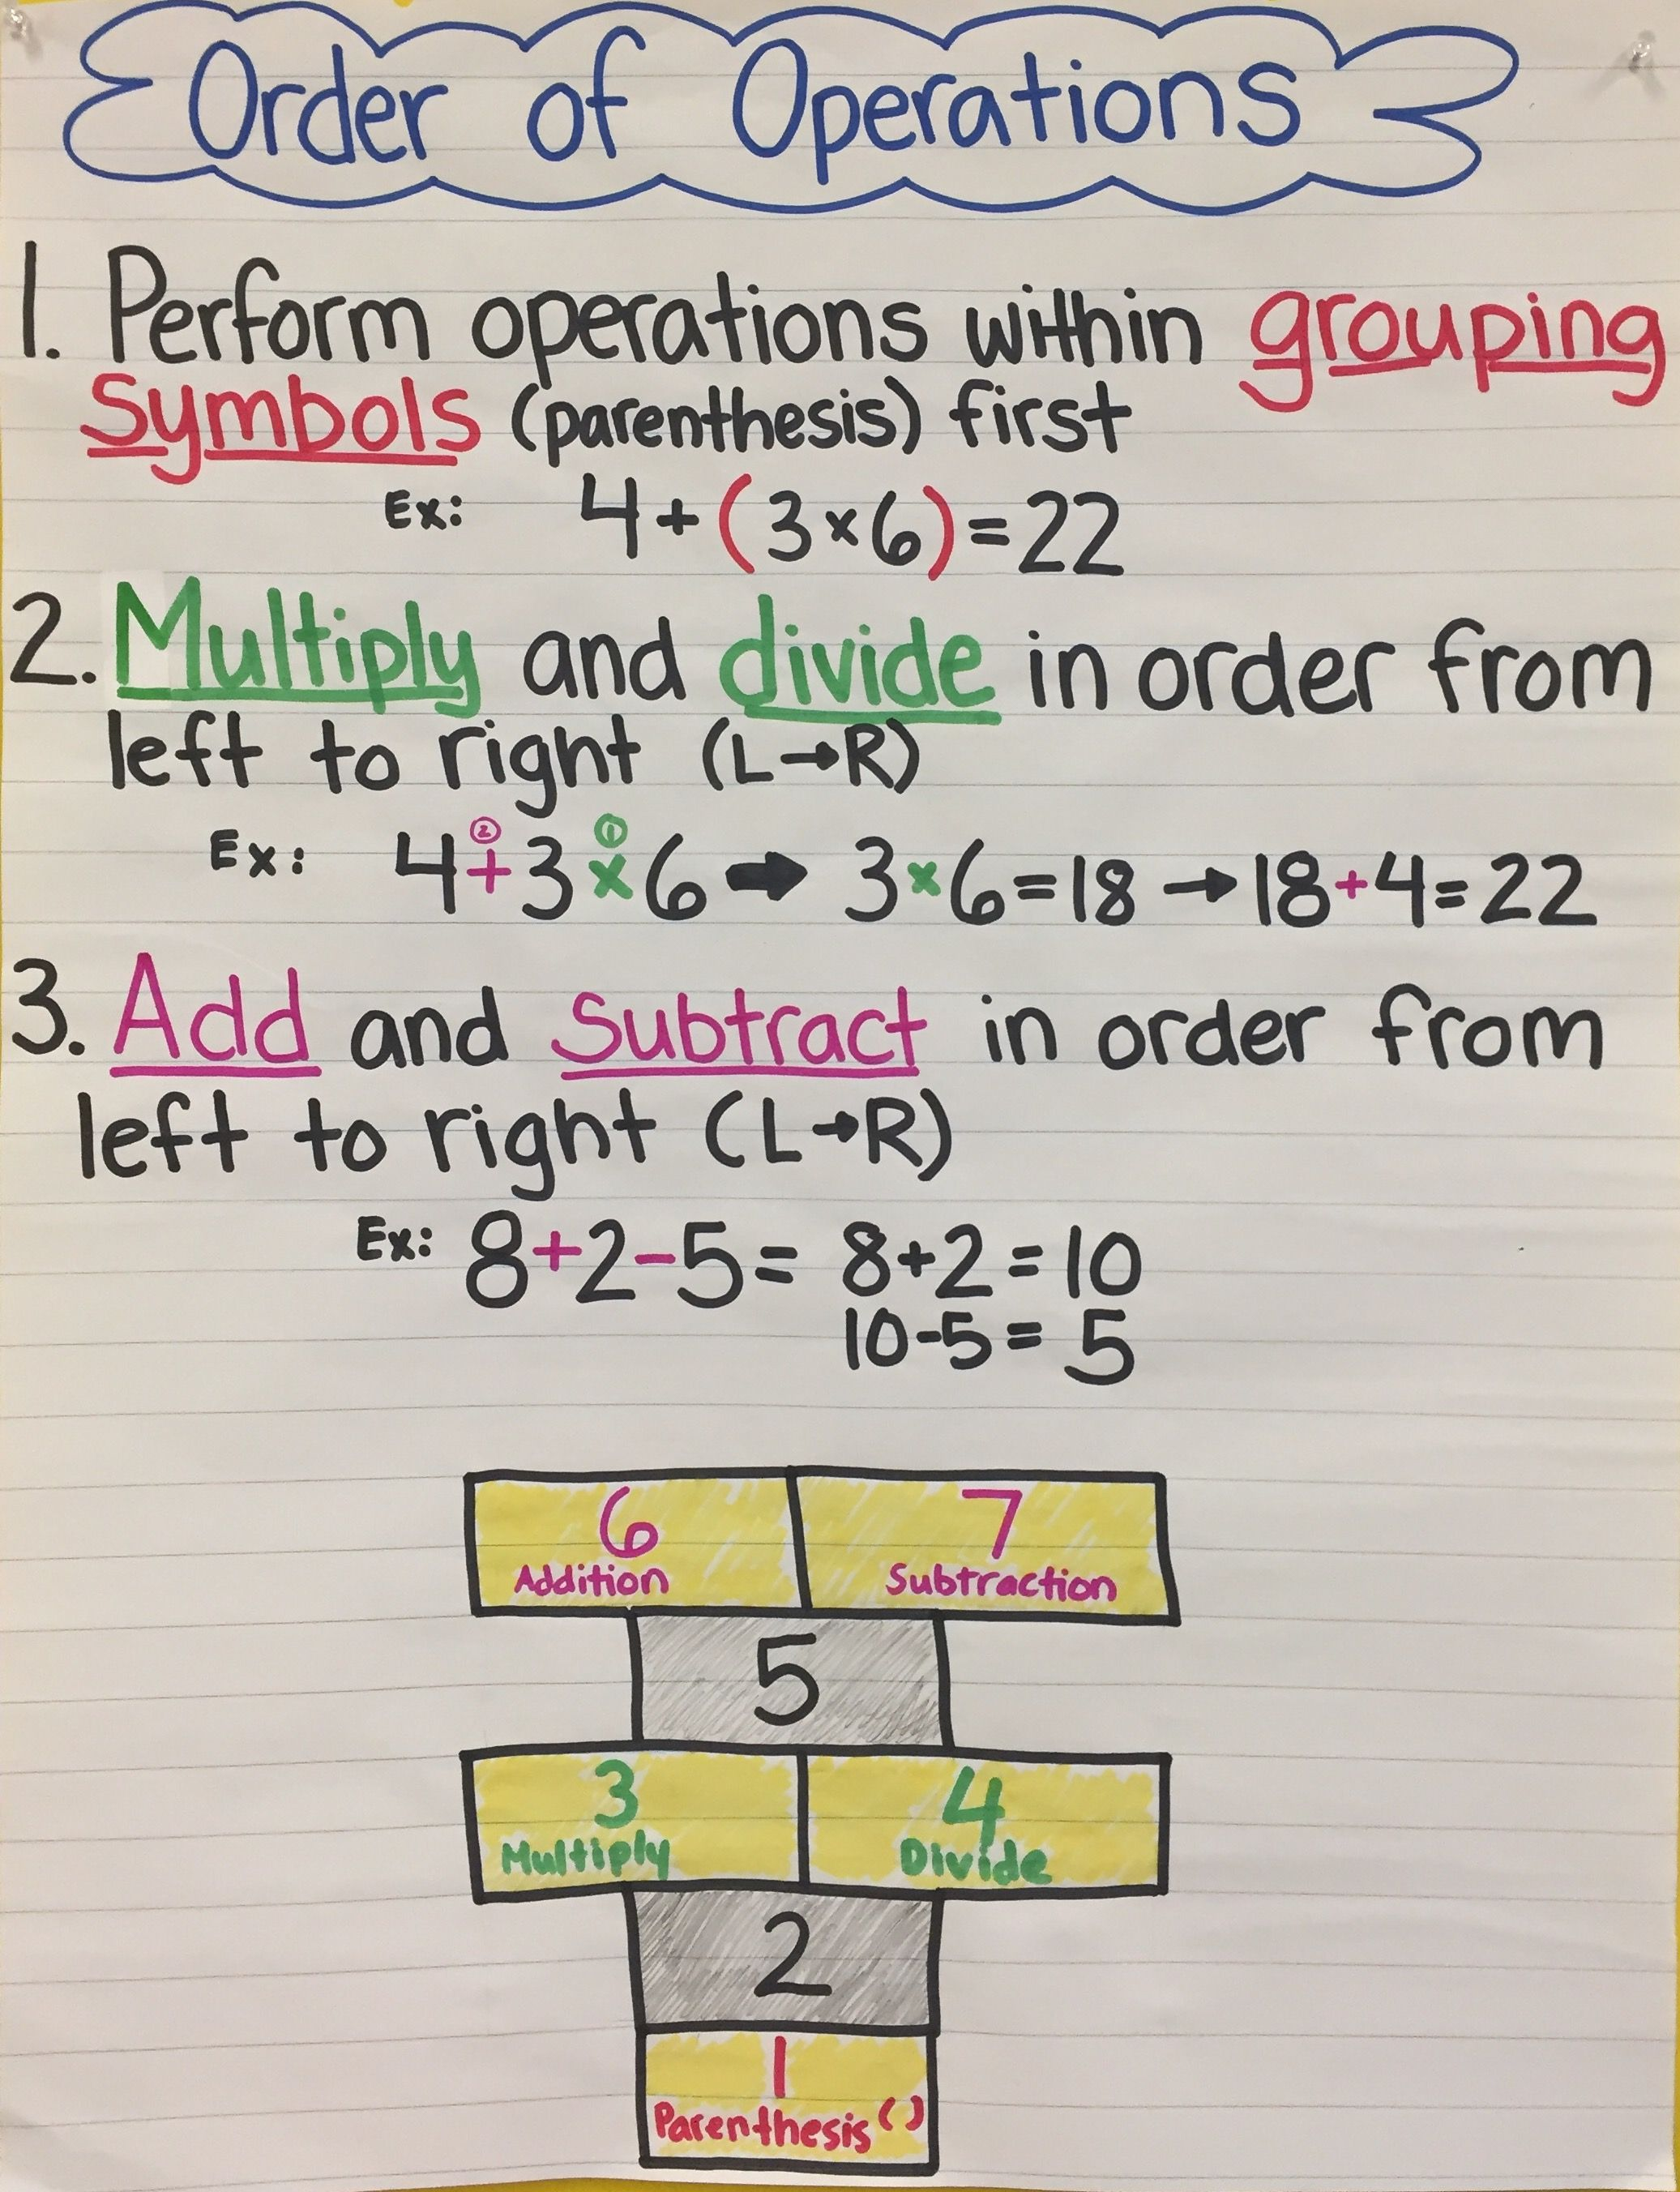 hight resolution of Order Of Operations Worksheets For 5th Grade   Printable Worksheets and  Activities for Teachers